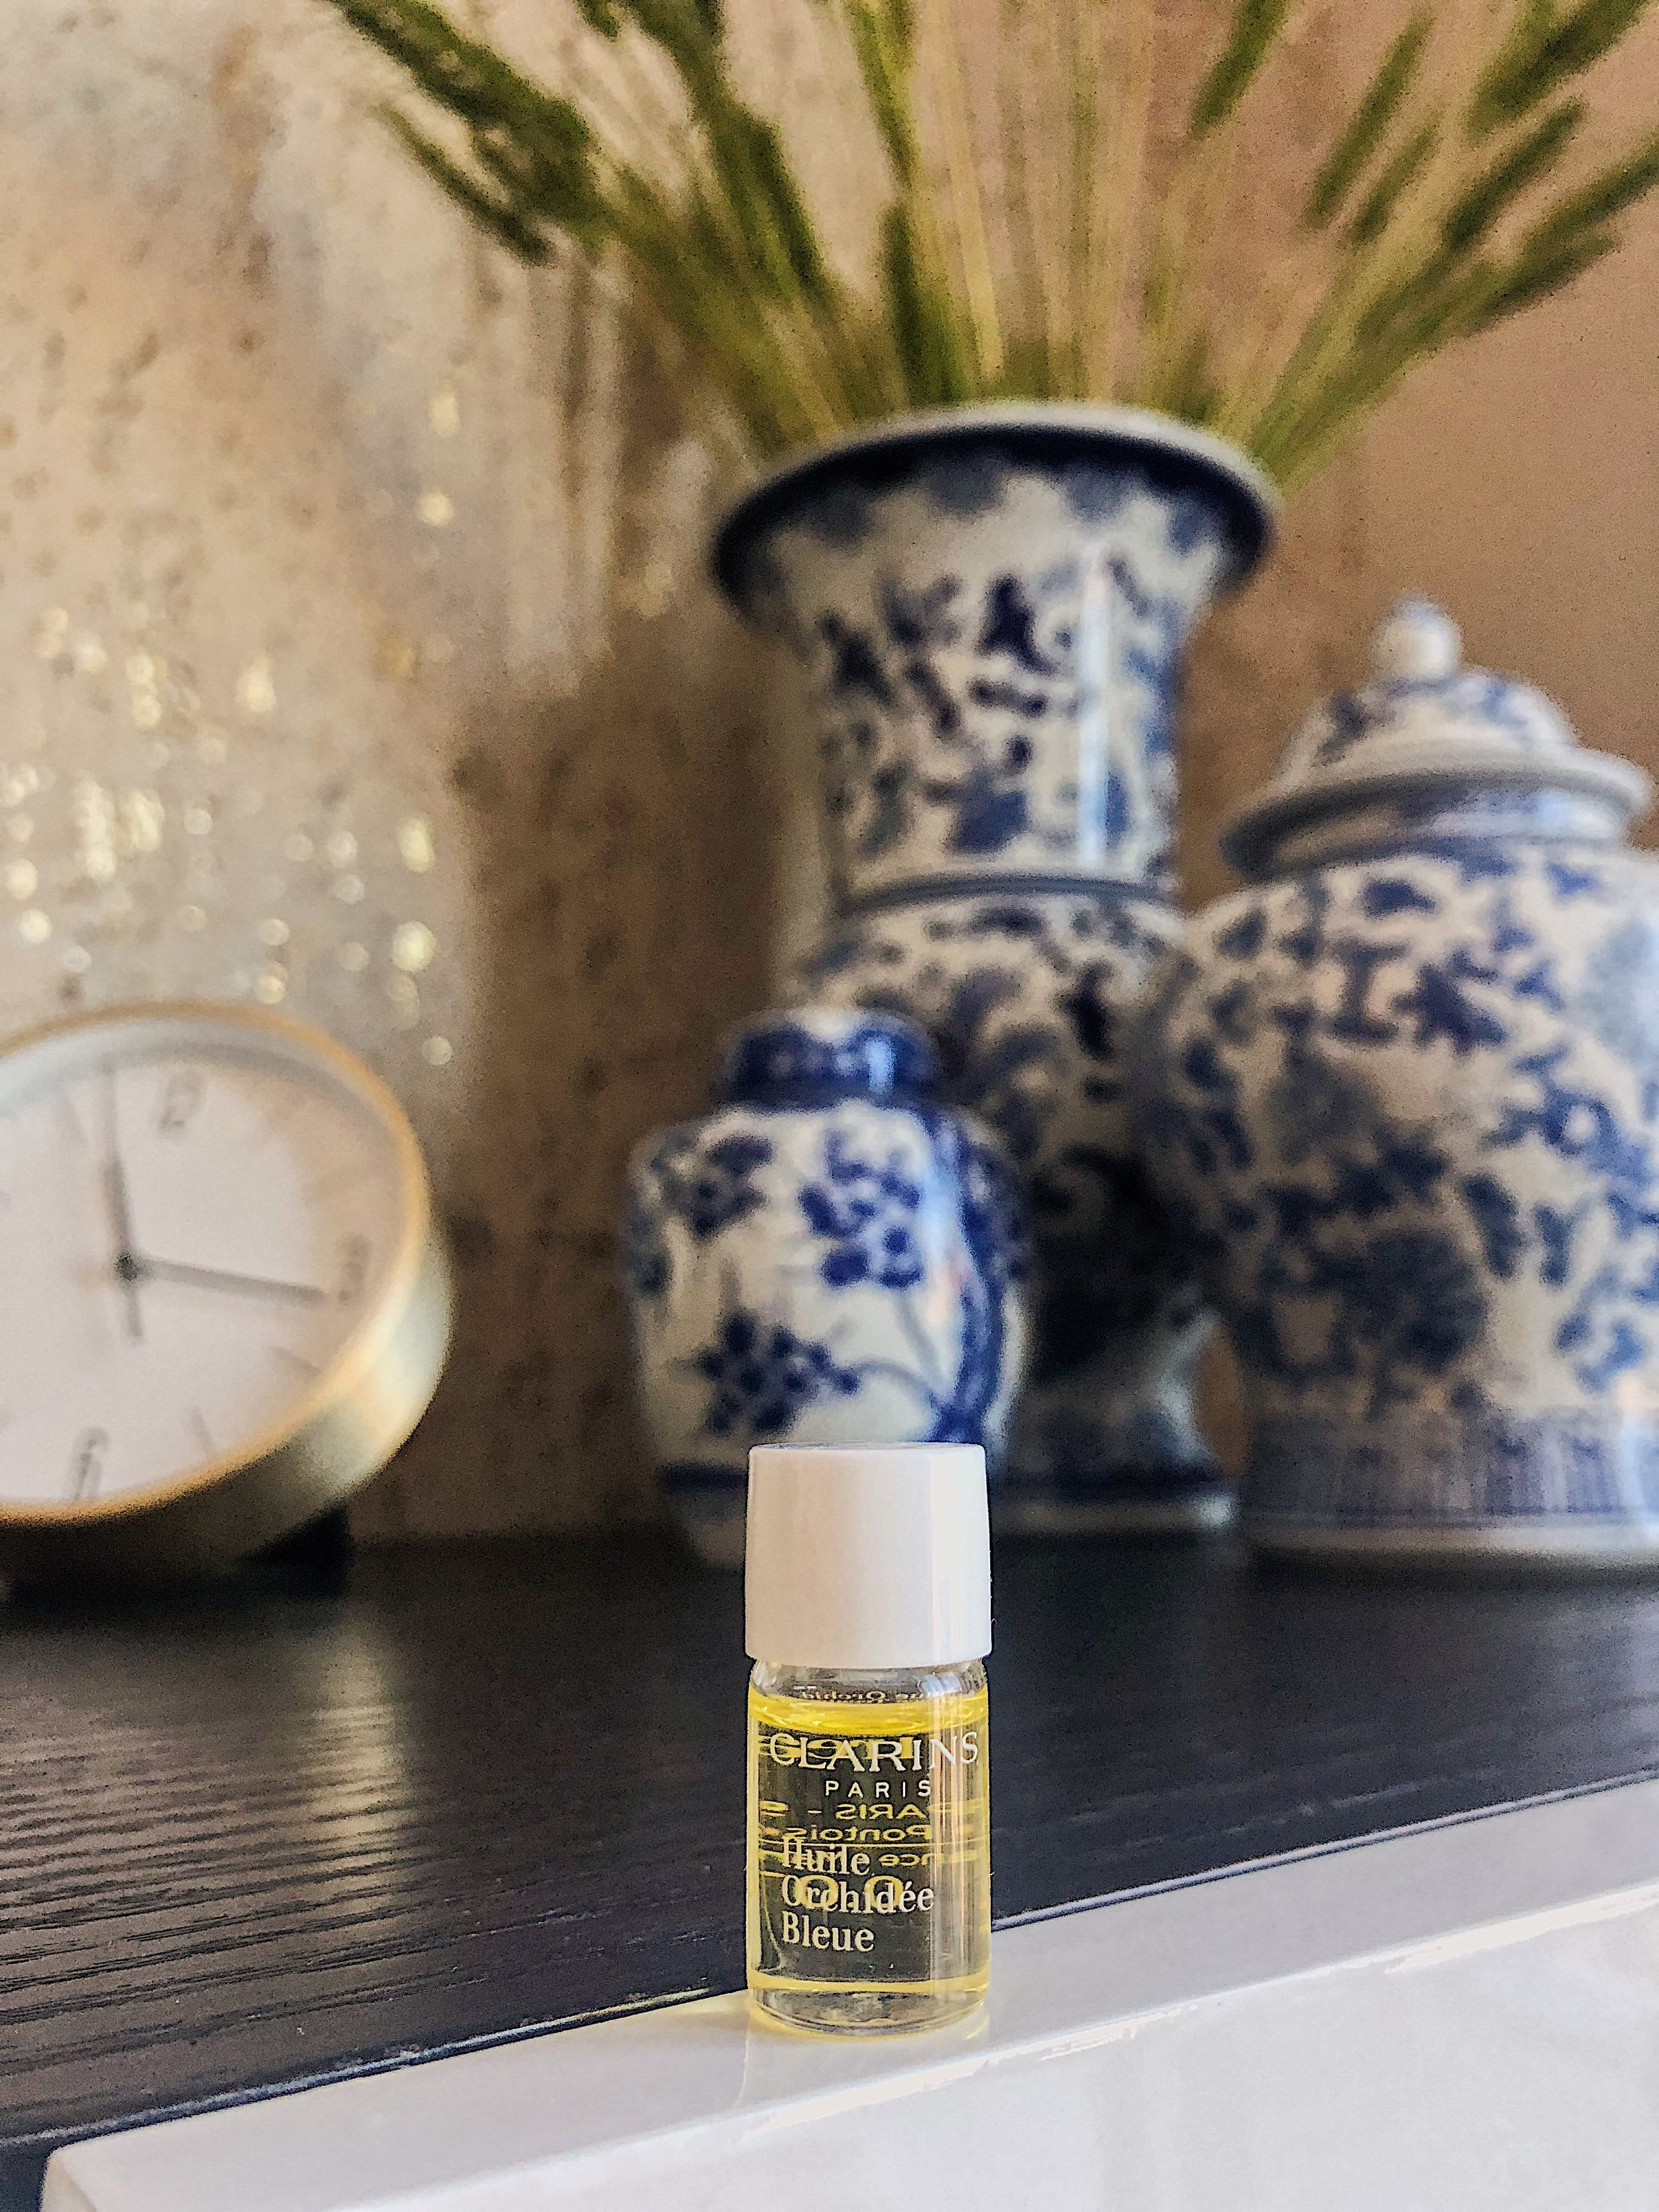 clarins new blue orchid face oil.JPG